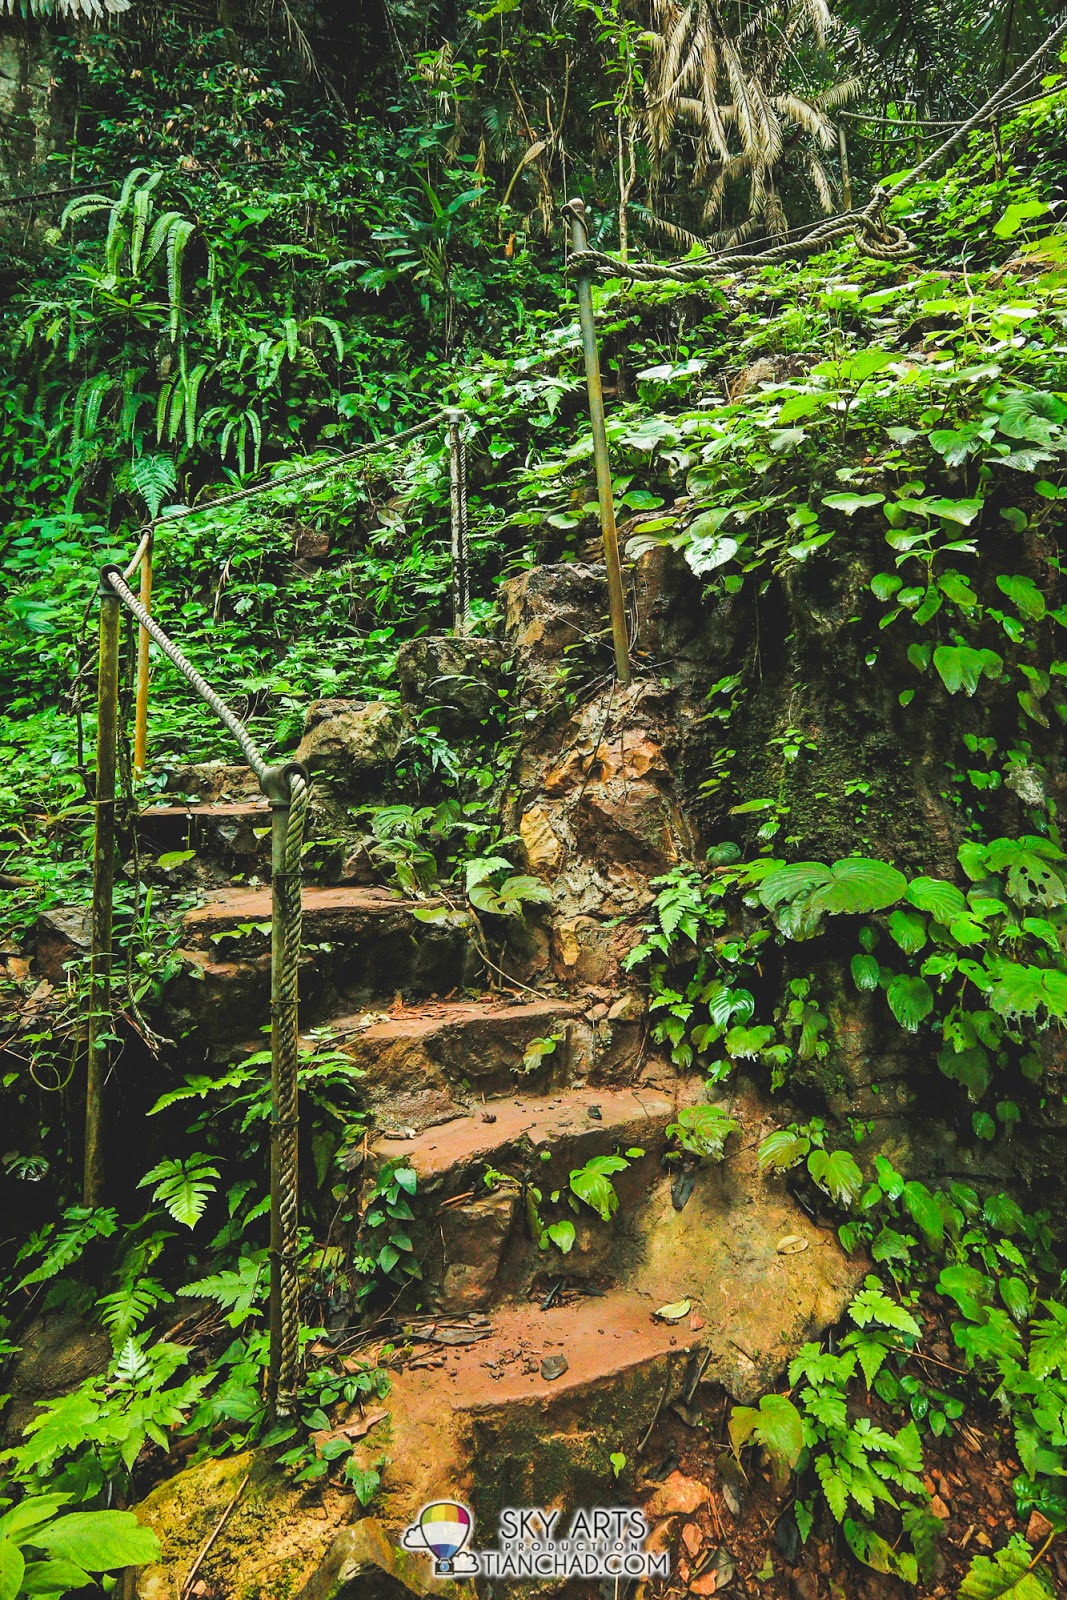 Some manmade stairs on the way uphill to the other side of Qing Xin Ling I guess